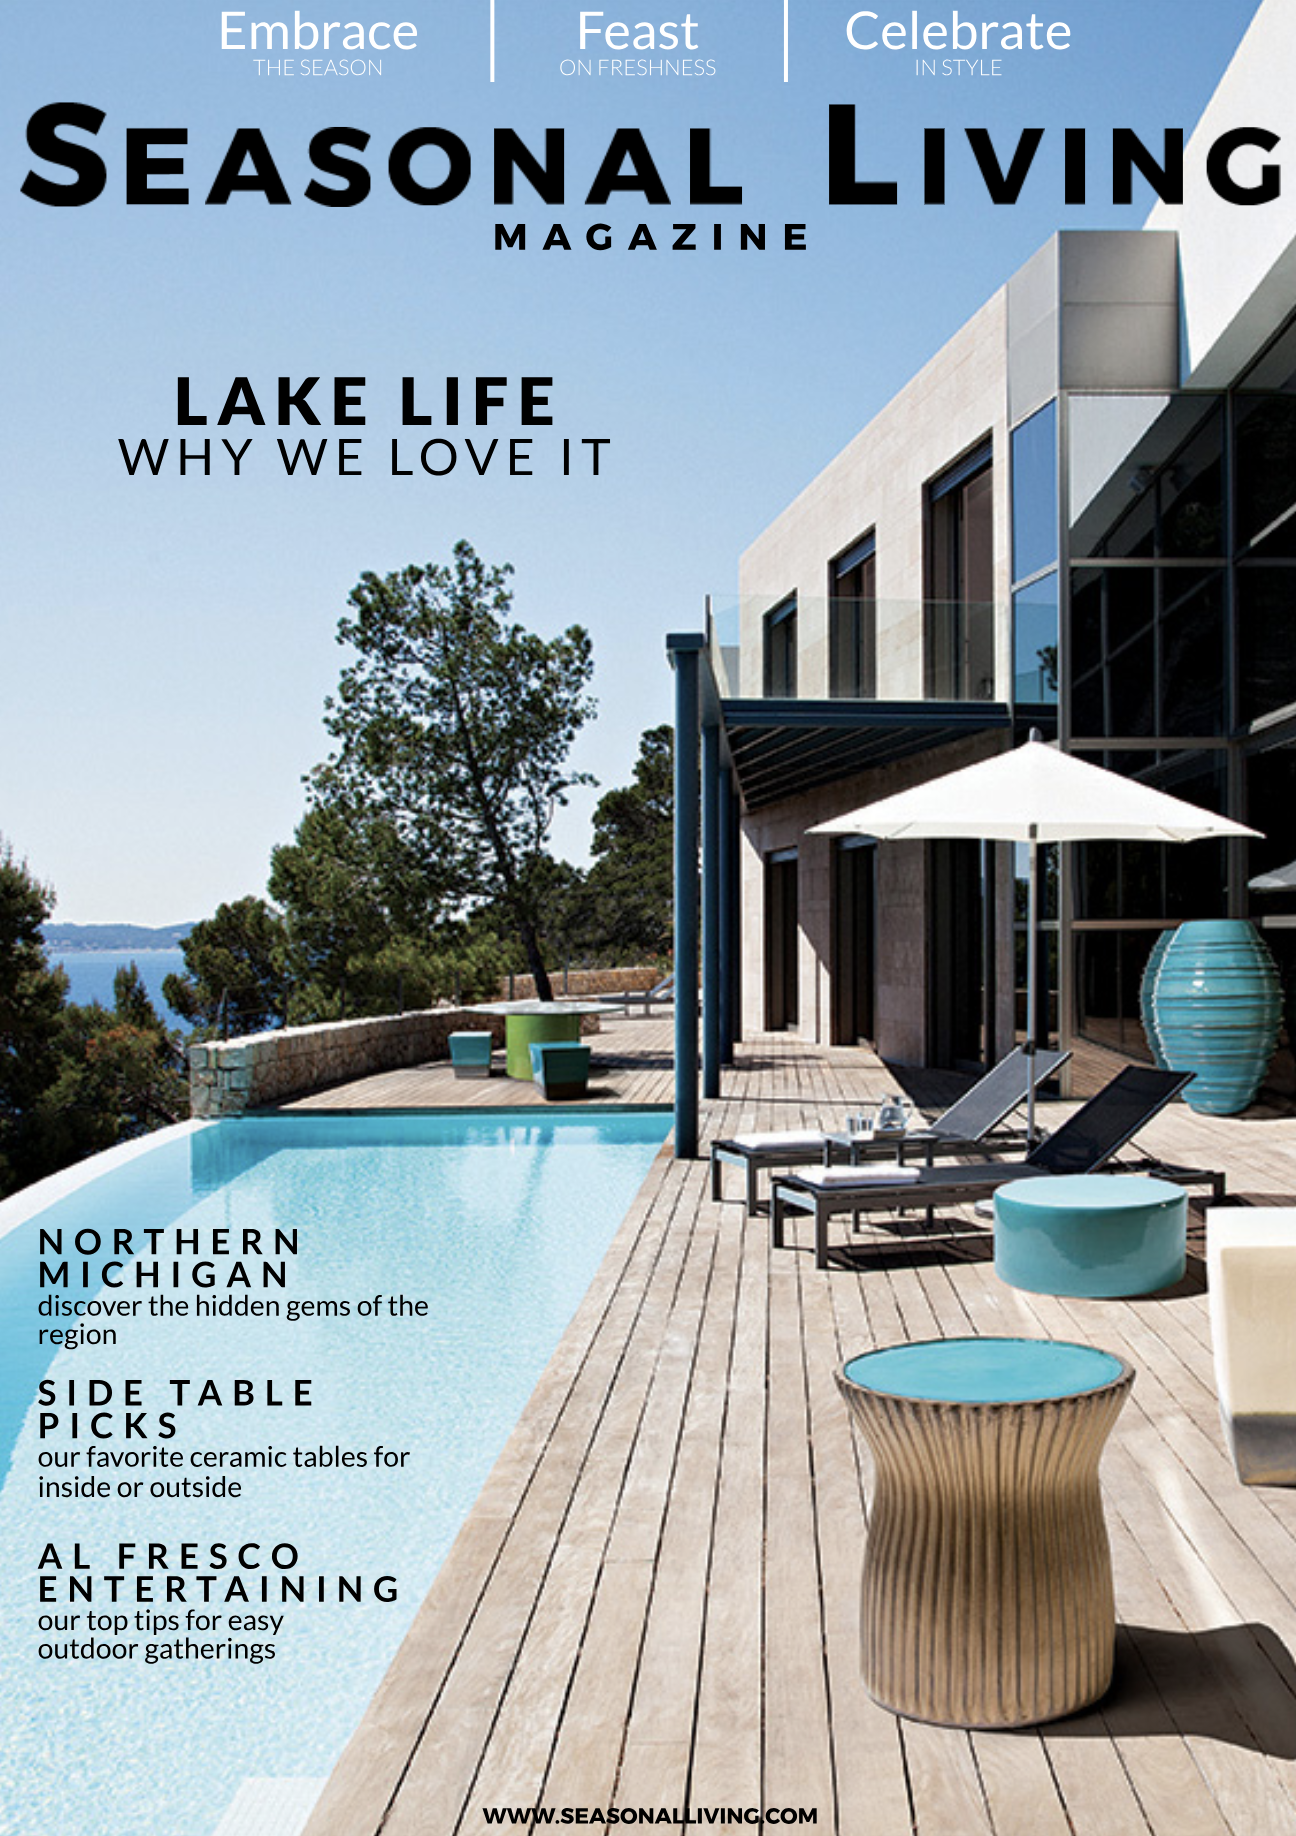 seasonal living, full online magazine, home accessories, savour partnership,